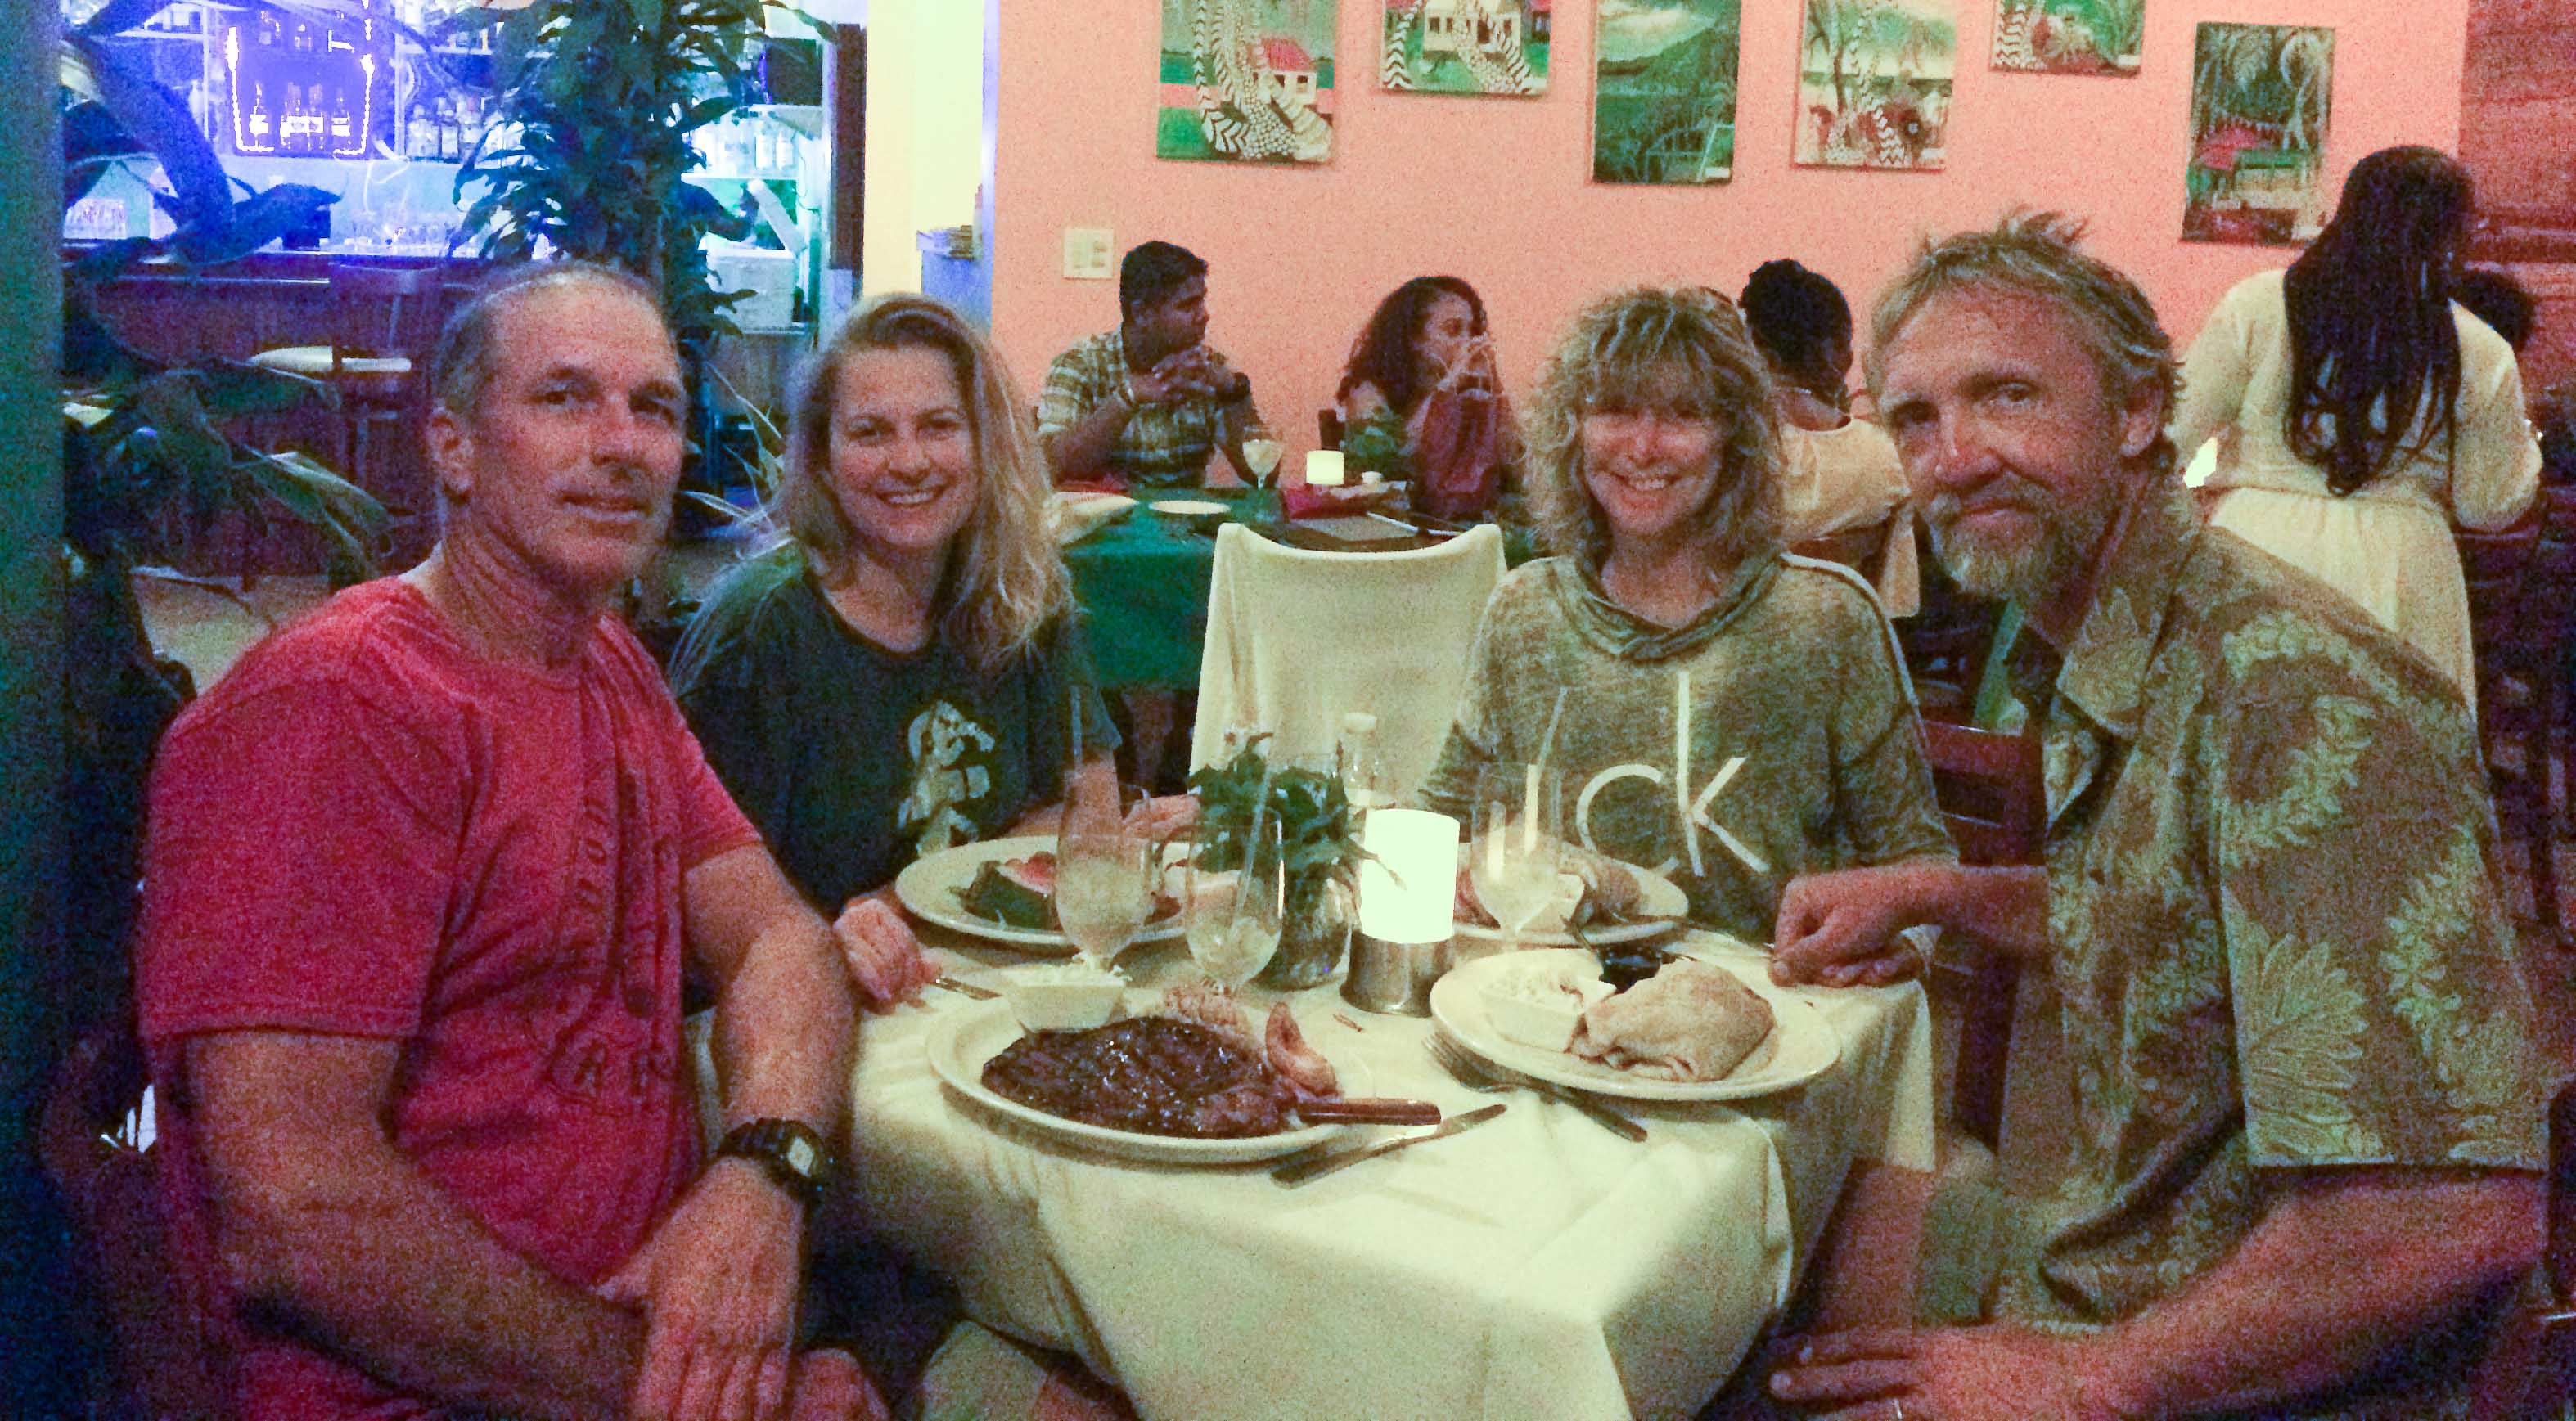 Steve, Carmen, Gail, and Ted having dinner at d'CoalPot.